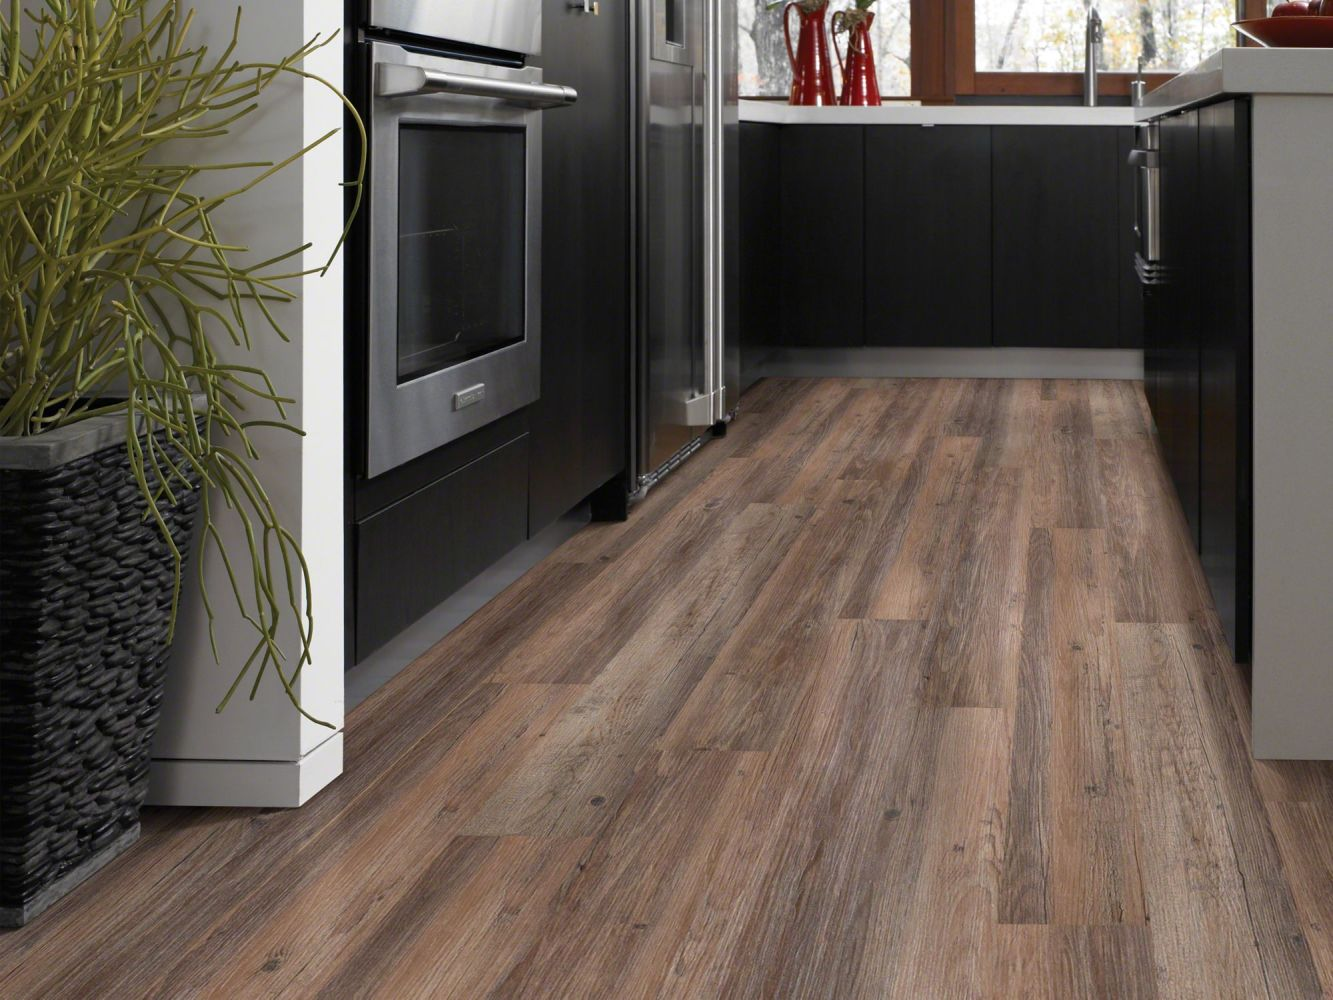 Shaw Floors 5th And Main Wall Street 6 Journal 00722_5M229